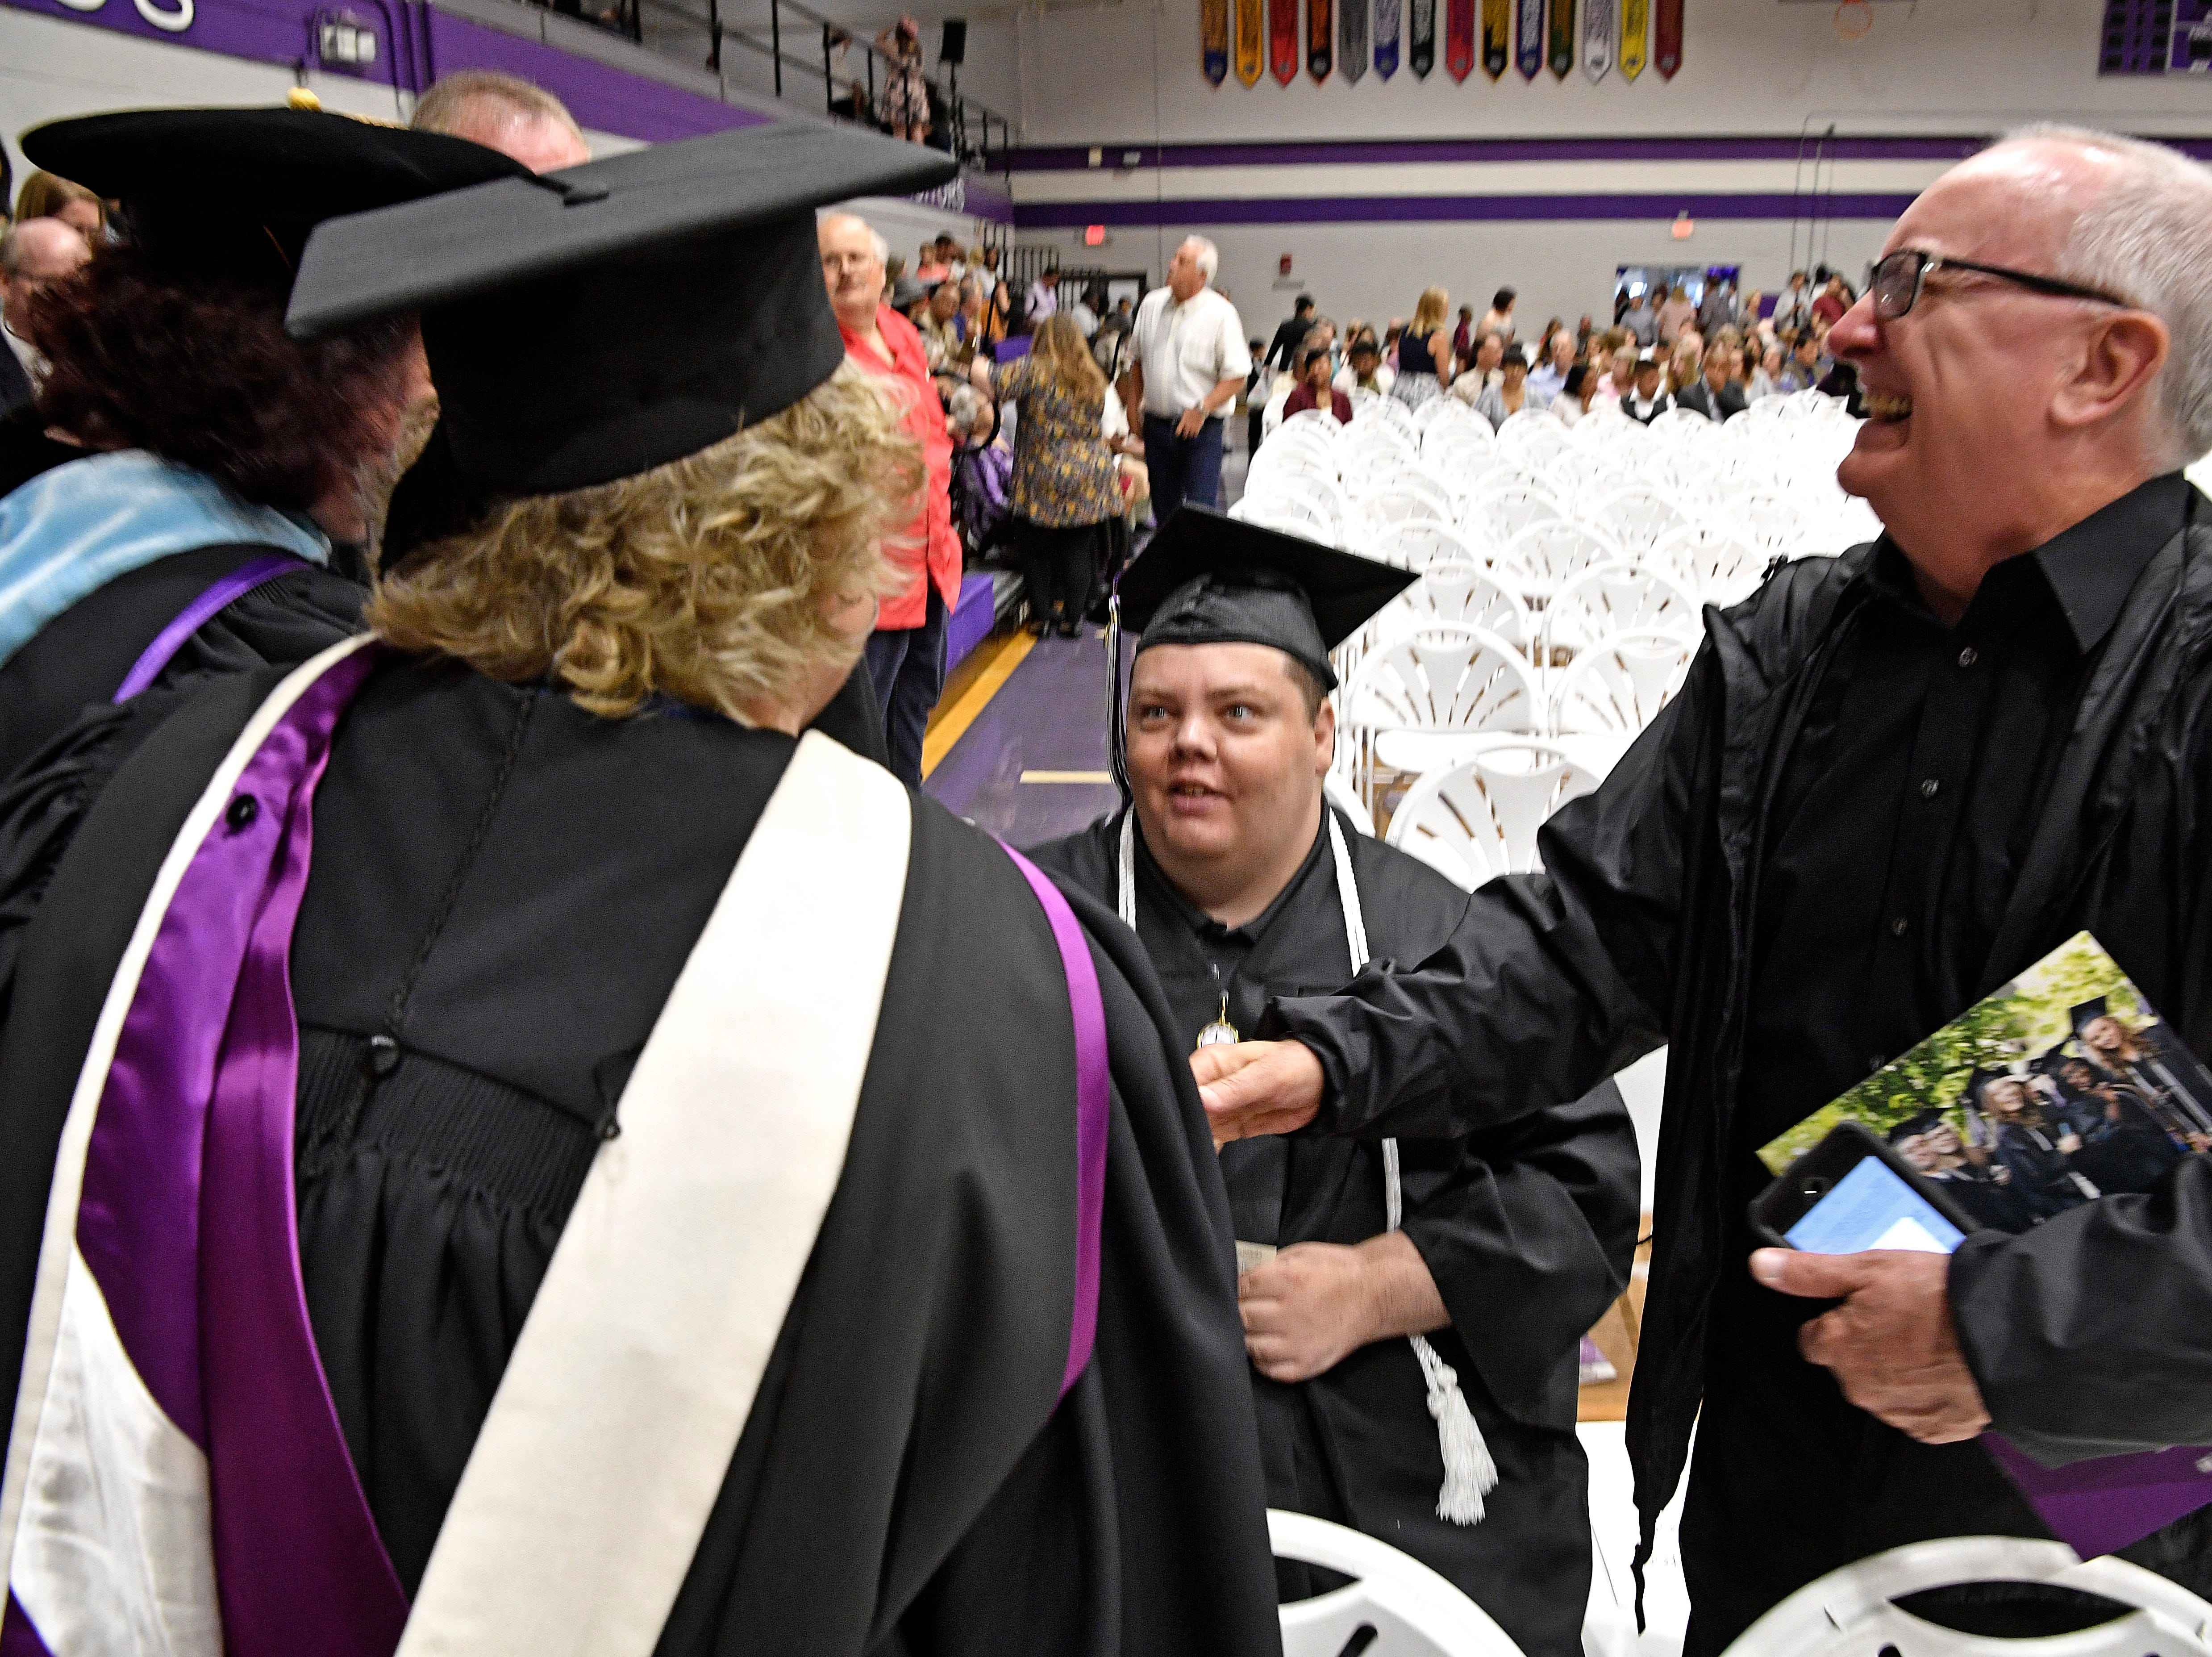 Brian Schnelle graduated from Trevecca on Saturday after 12 years as a student. He is on the autism spectrum & has pursued his degree for all those years, taking about 6 credits a semester Saturday, May 4, 2019, in Nashville, Tenn.